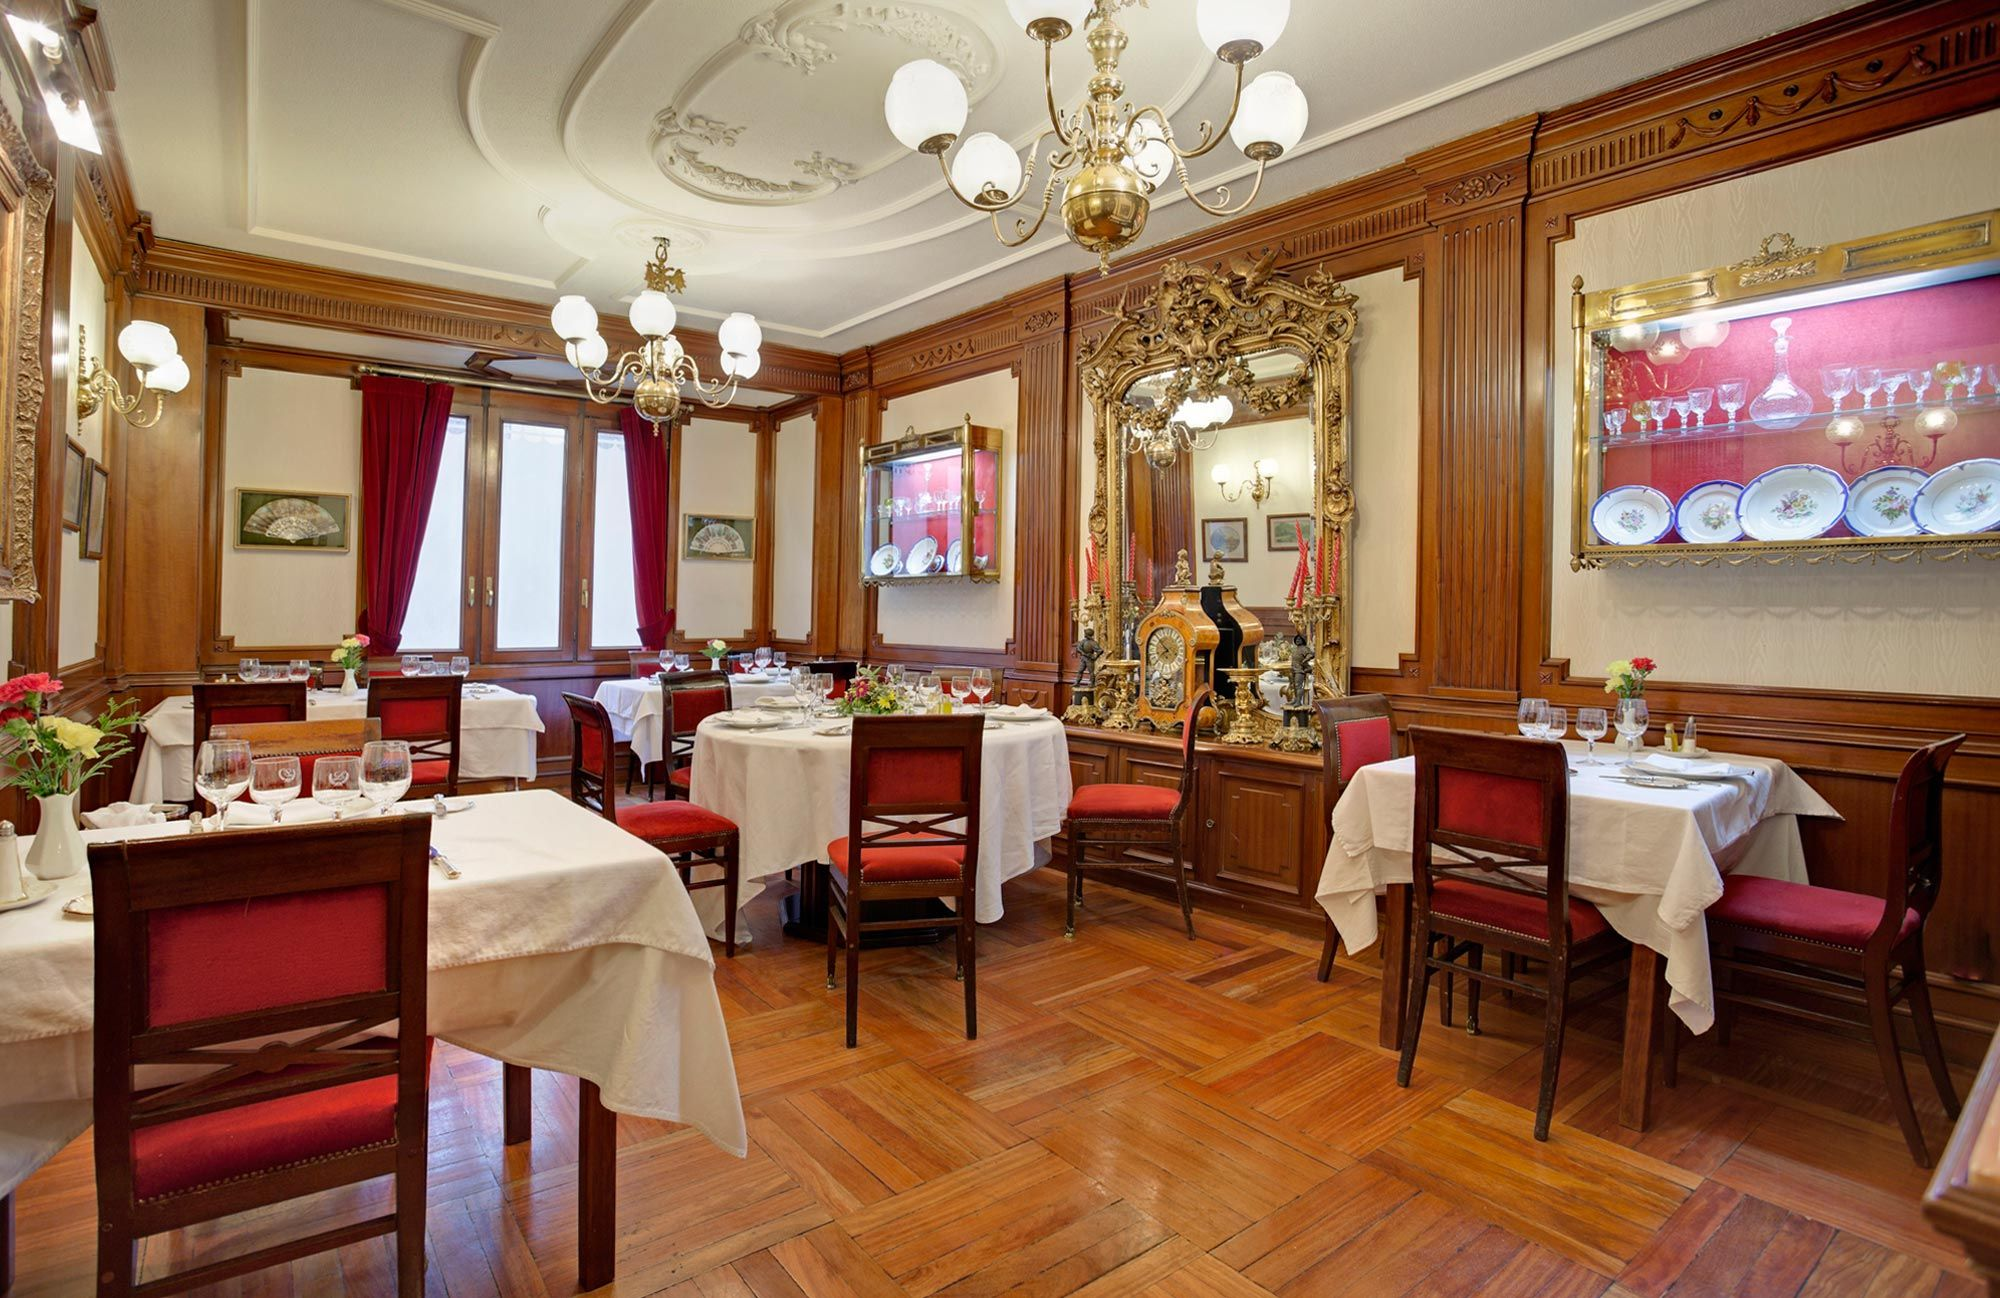 LHARDY (MADRID) INTERIOR